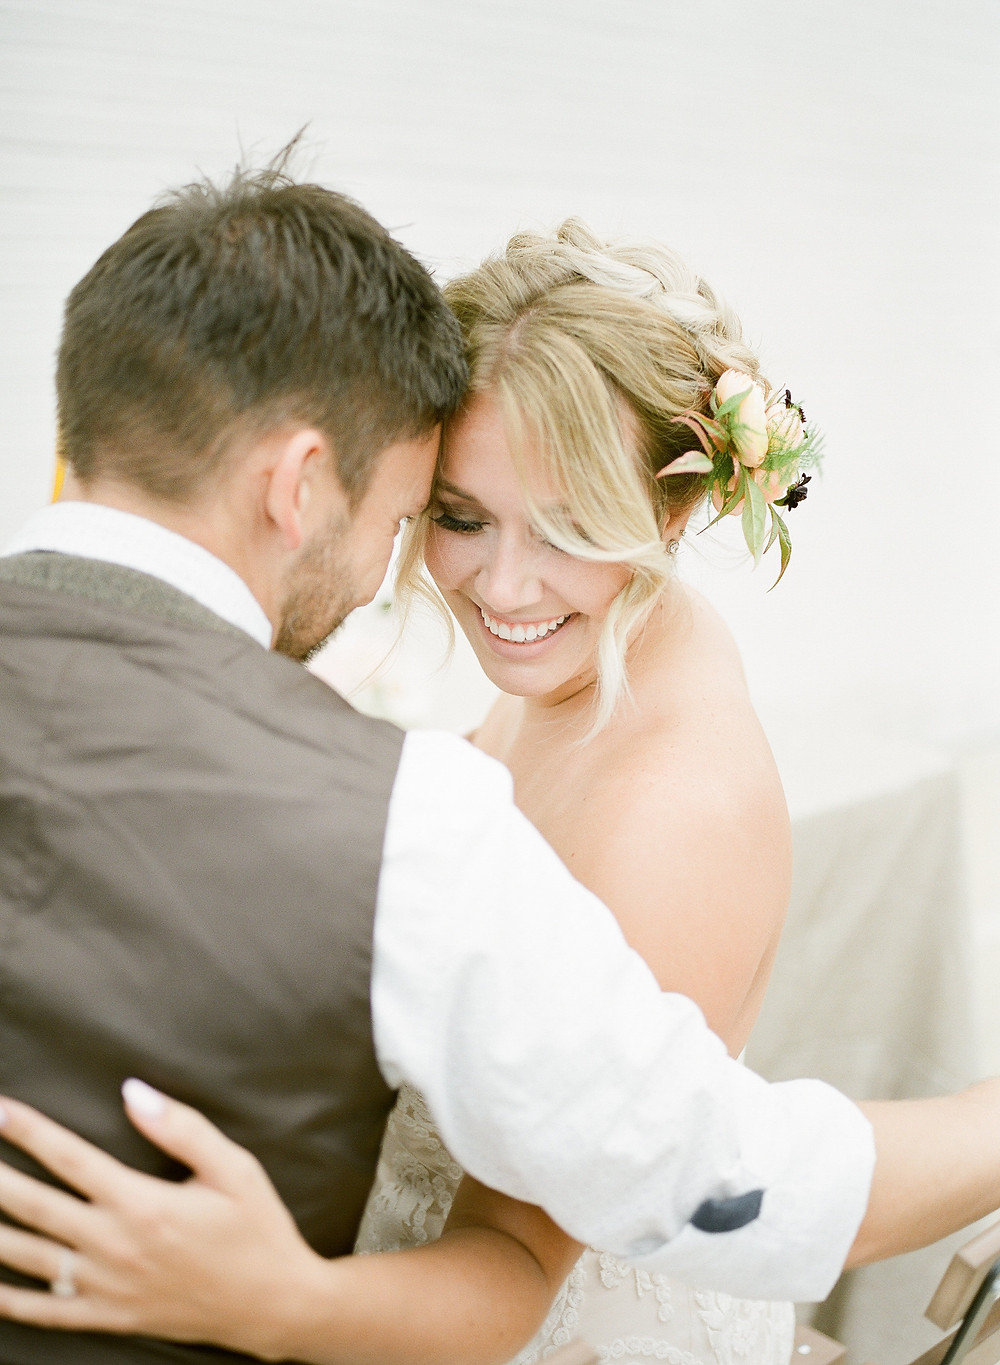 boho bride with flowers in her hair cuddling with groom